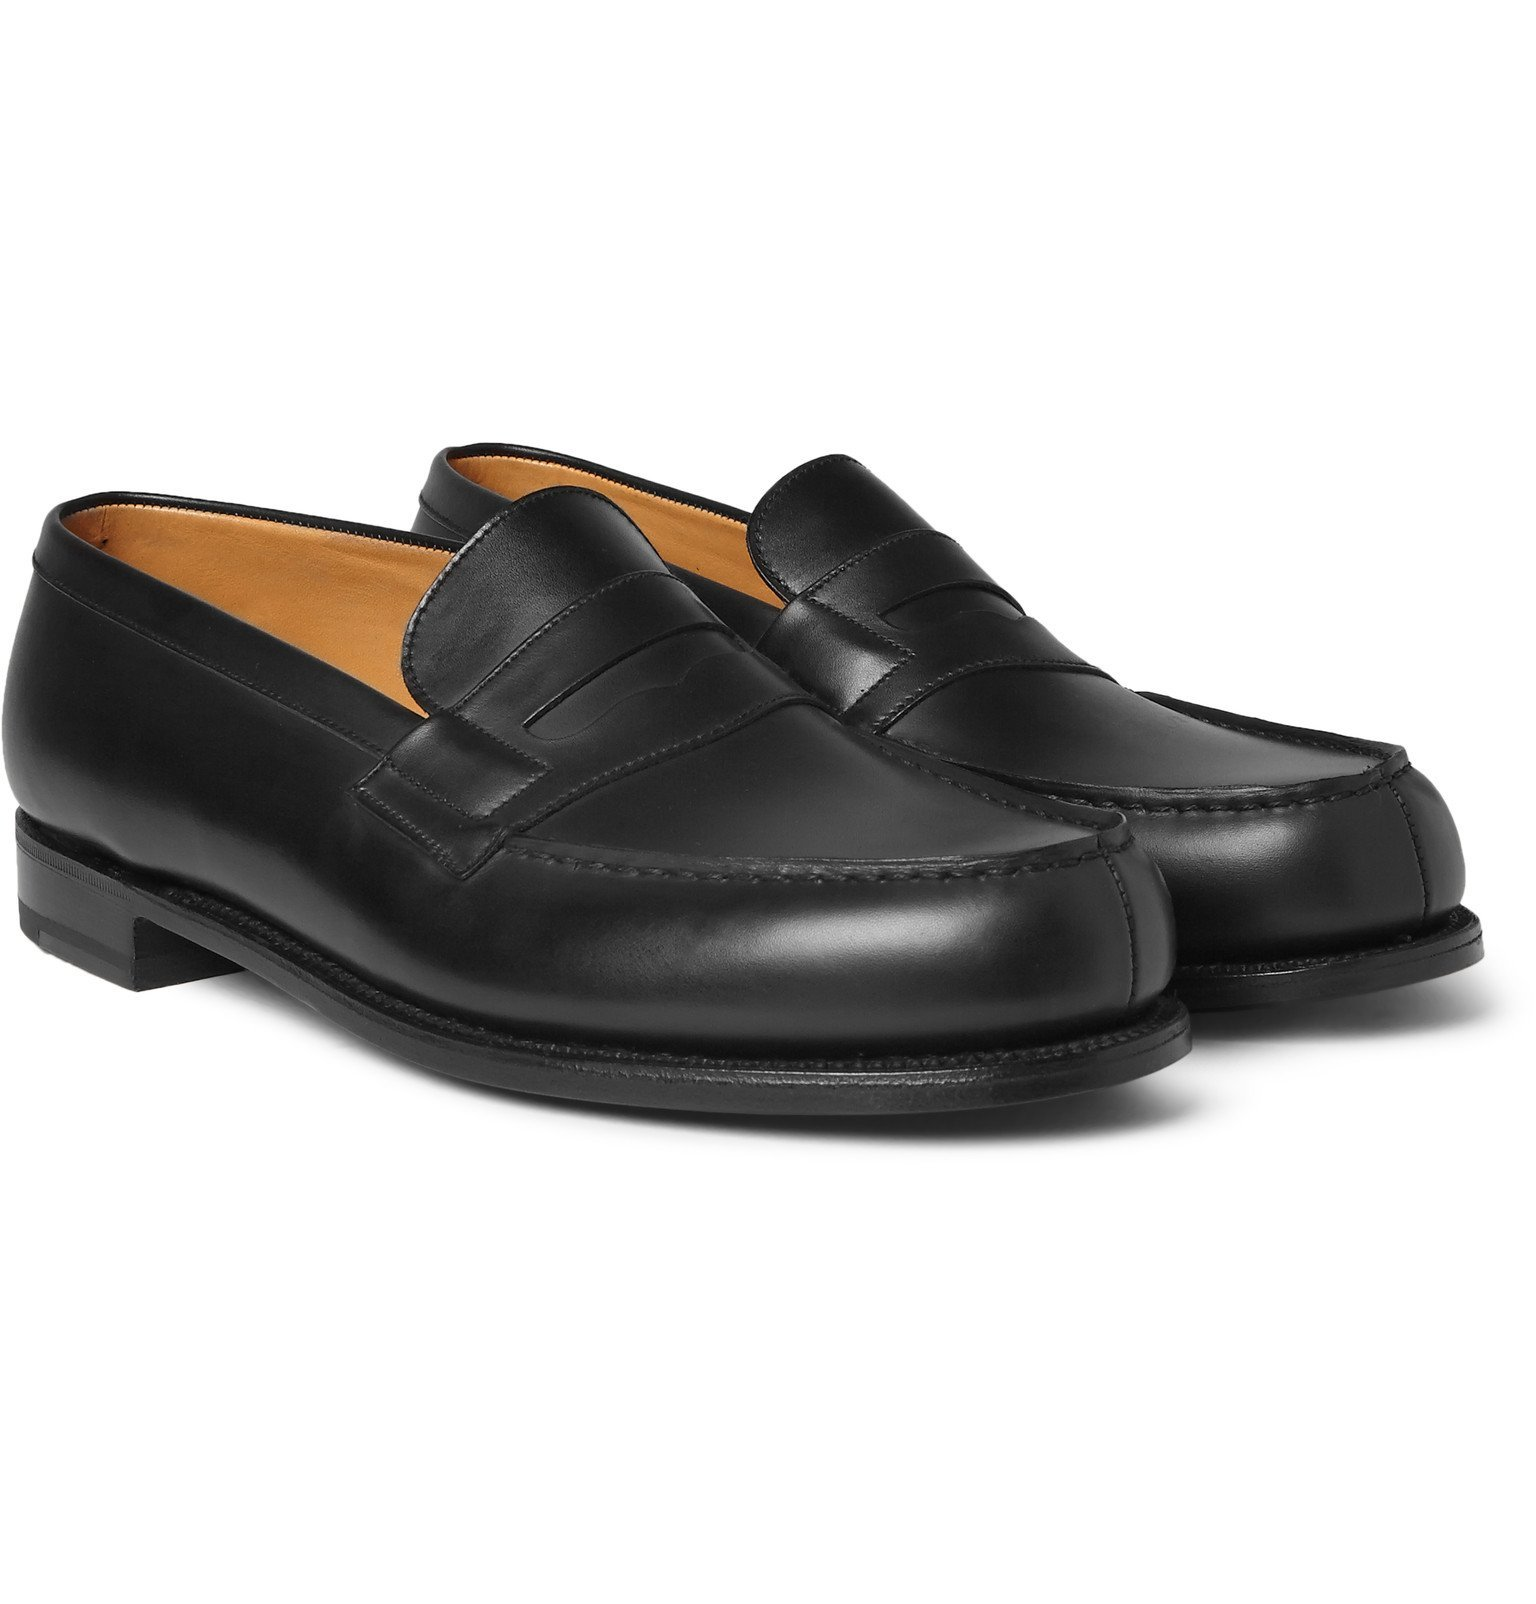 Photo: J.M. Weston - 180 The Moccasin Leather Penny Loafers - Black